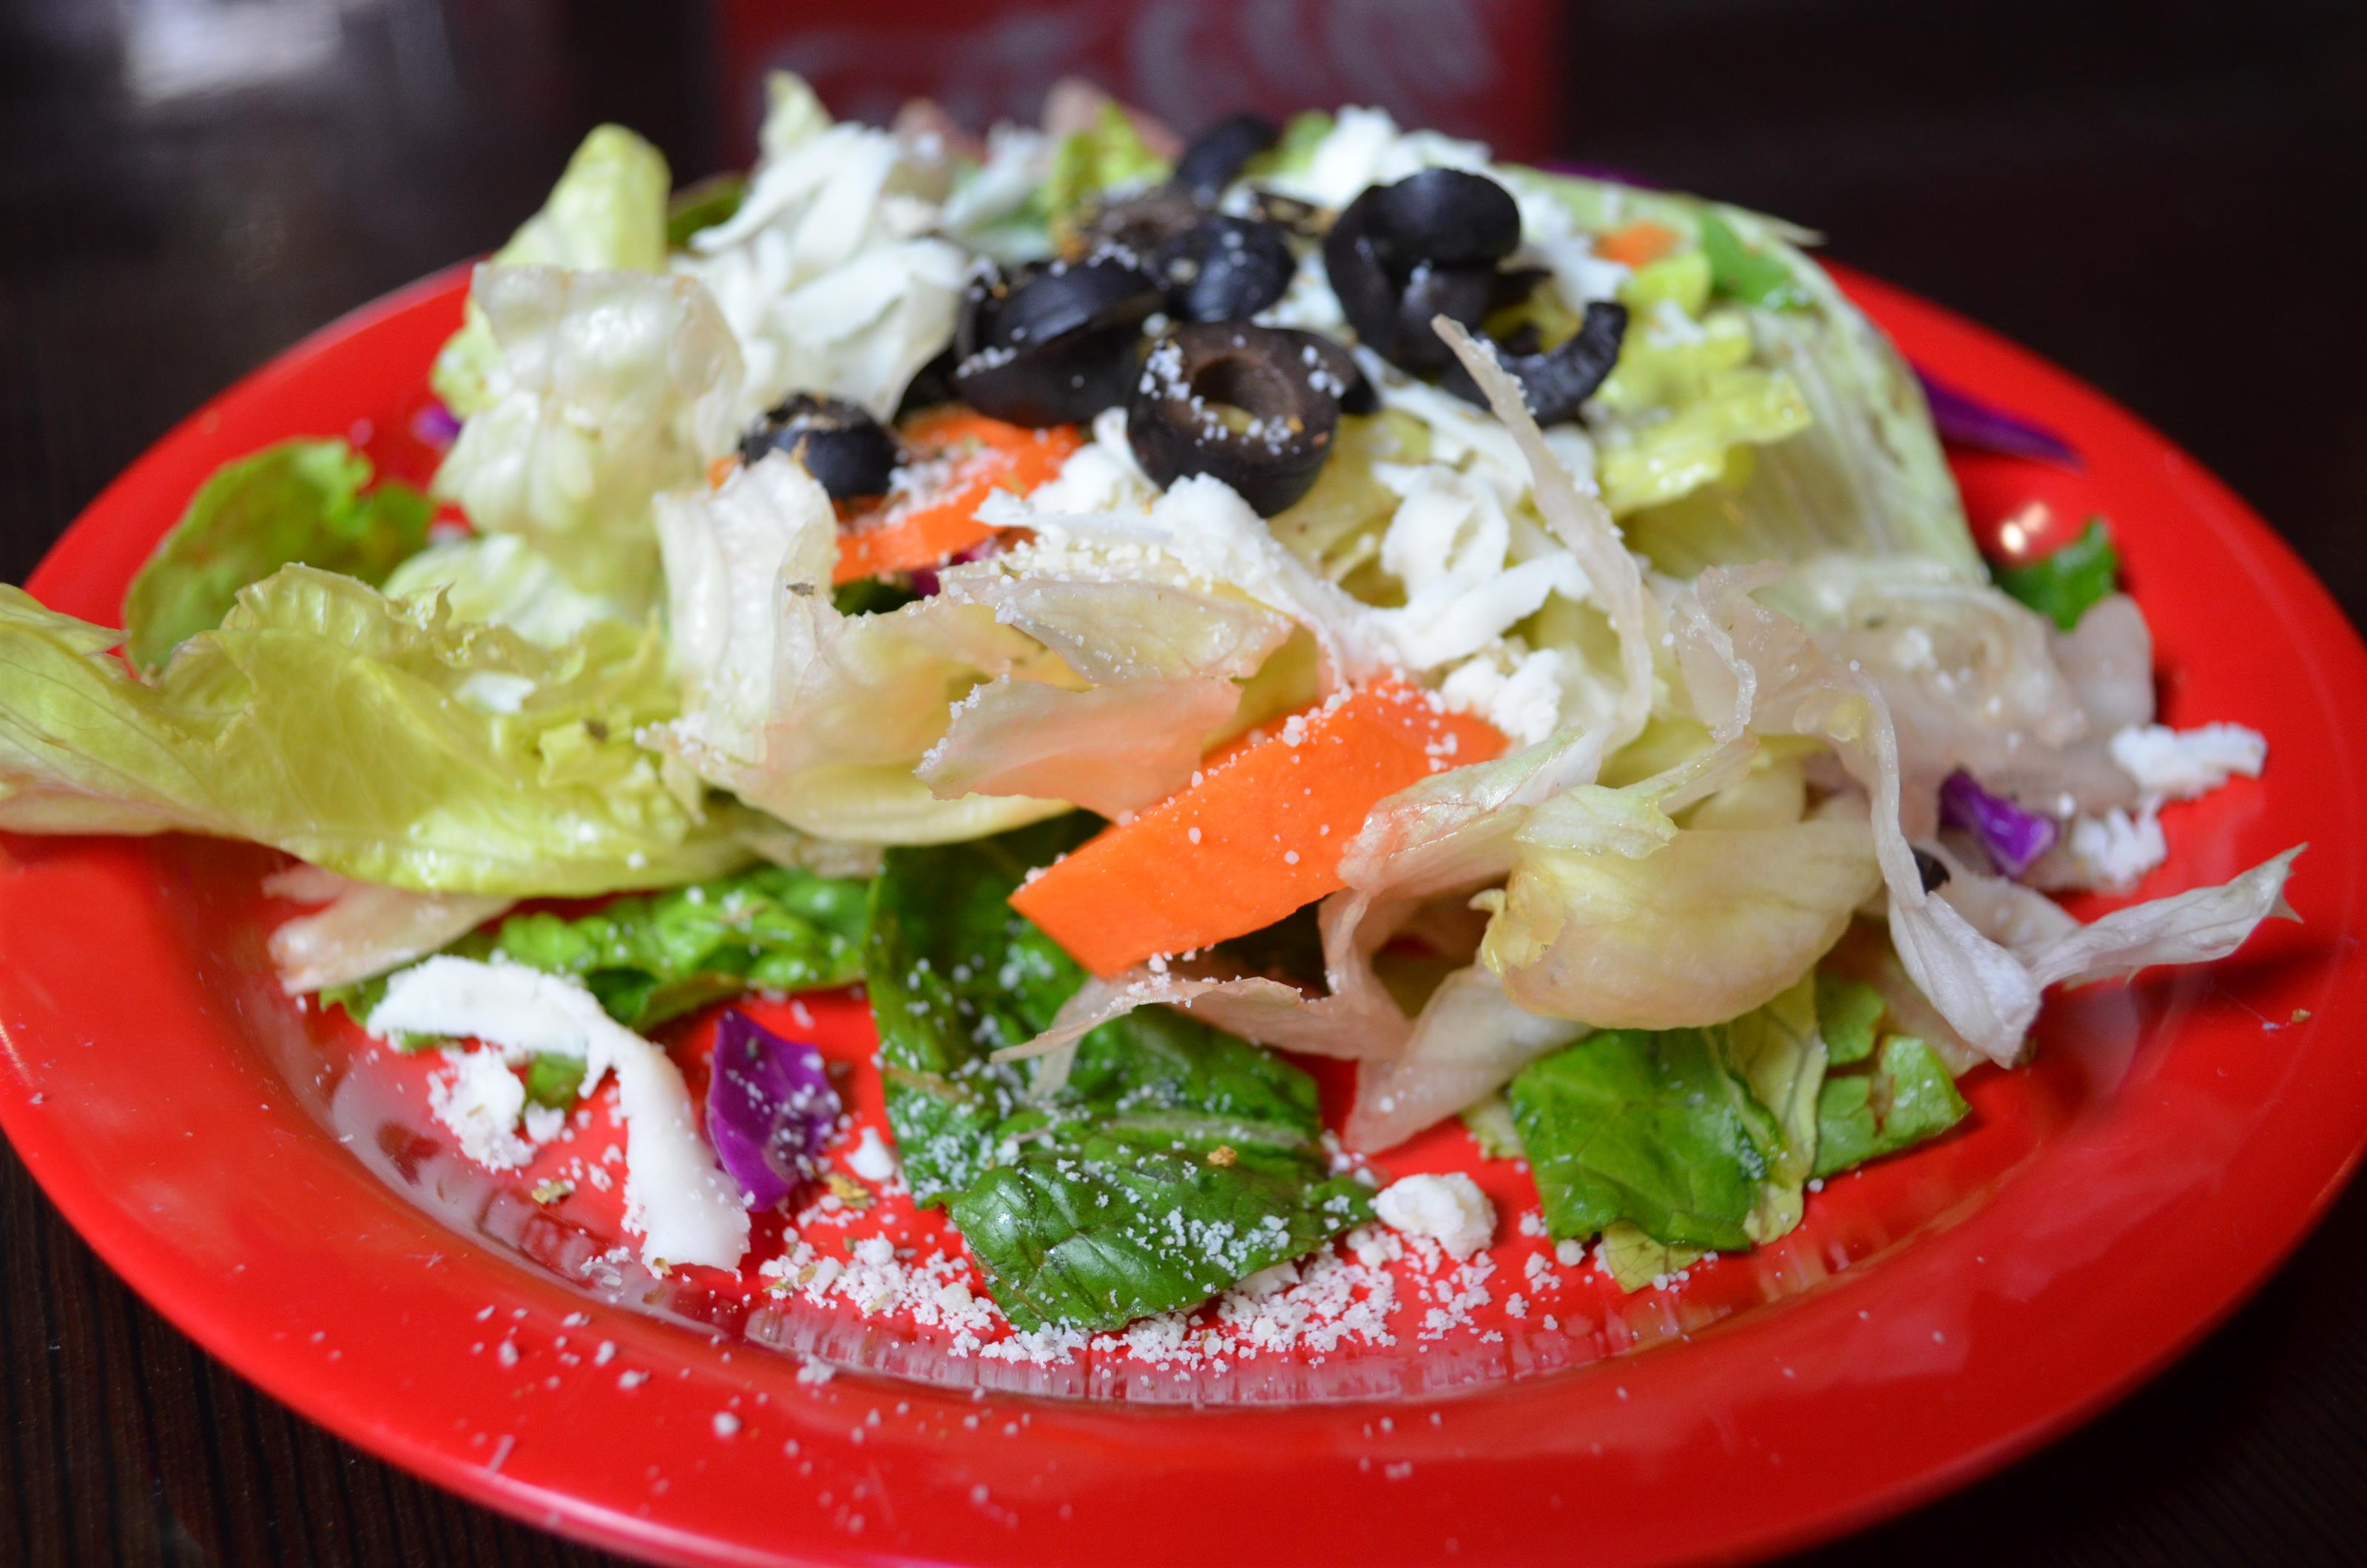 Dinner Salad. Iceberg lettuce, romaine, red cabbage, carrots, olives, and mozzarella cheese.